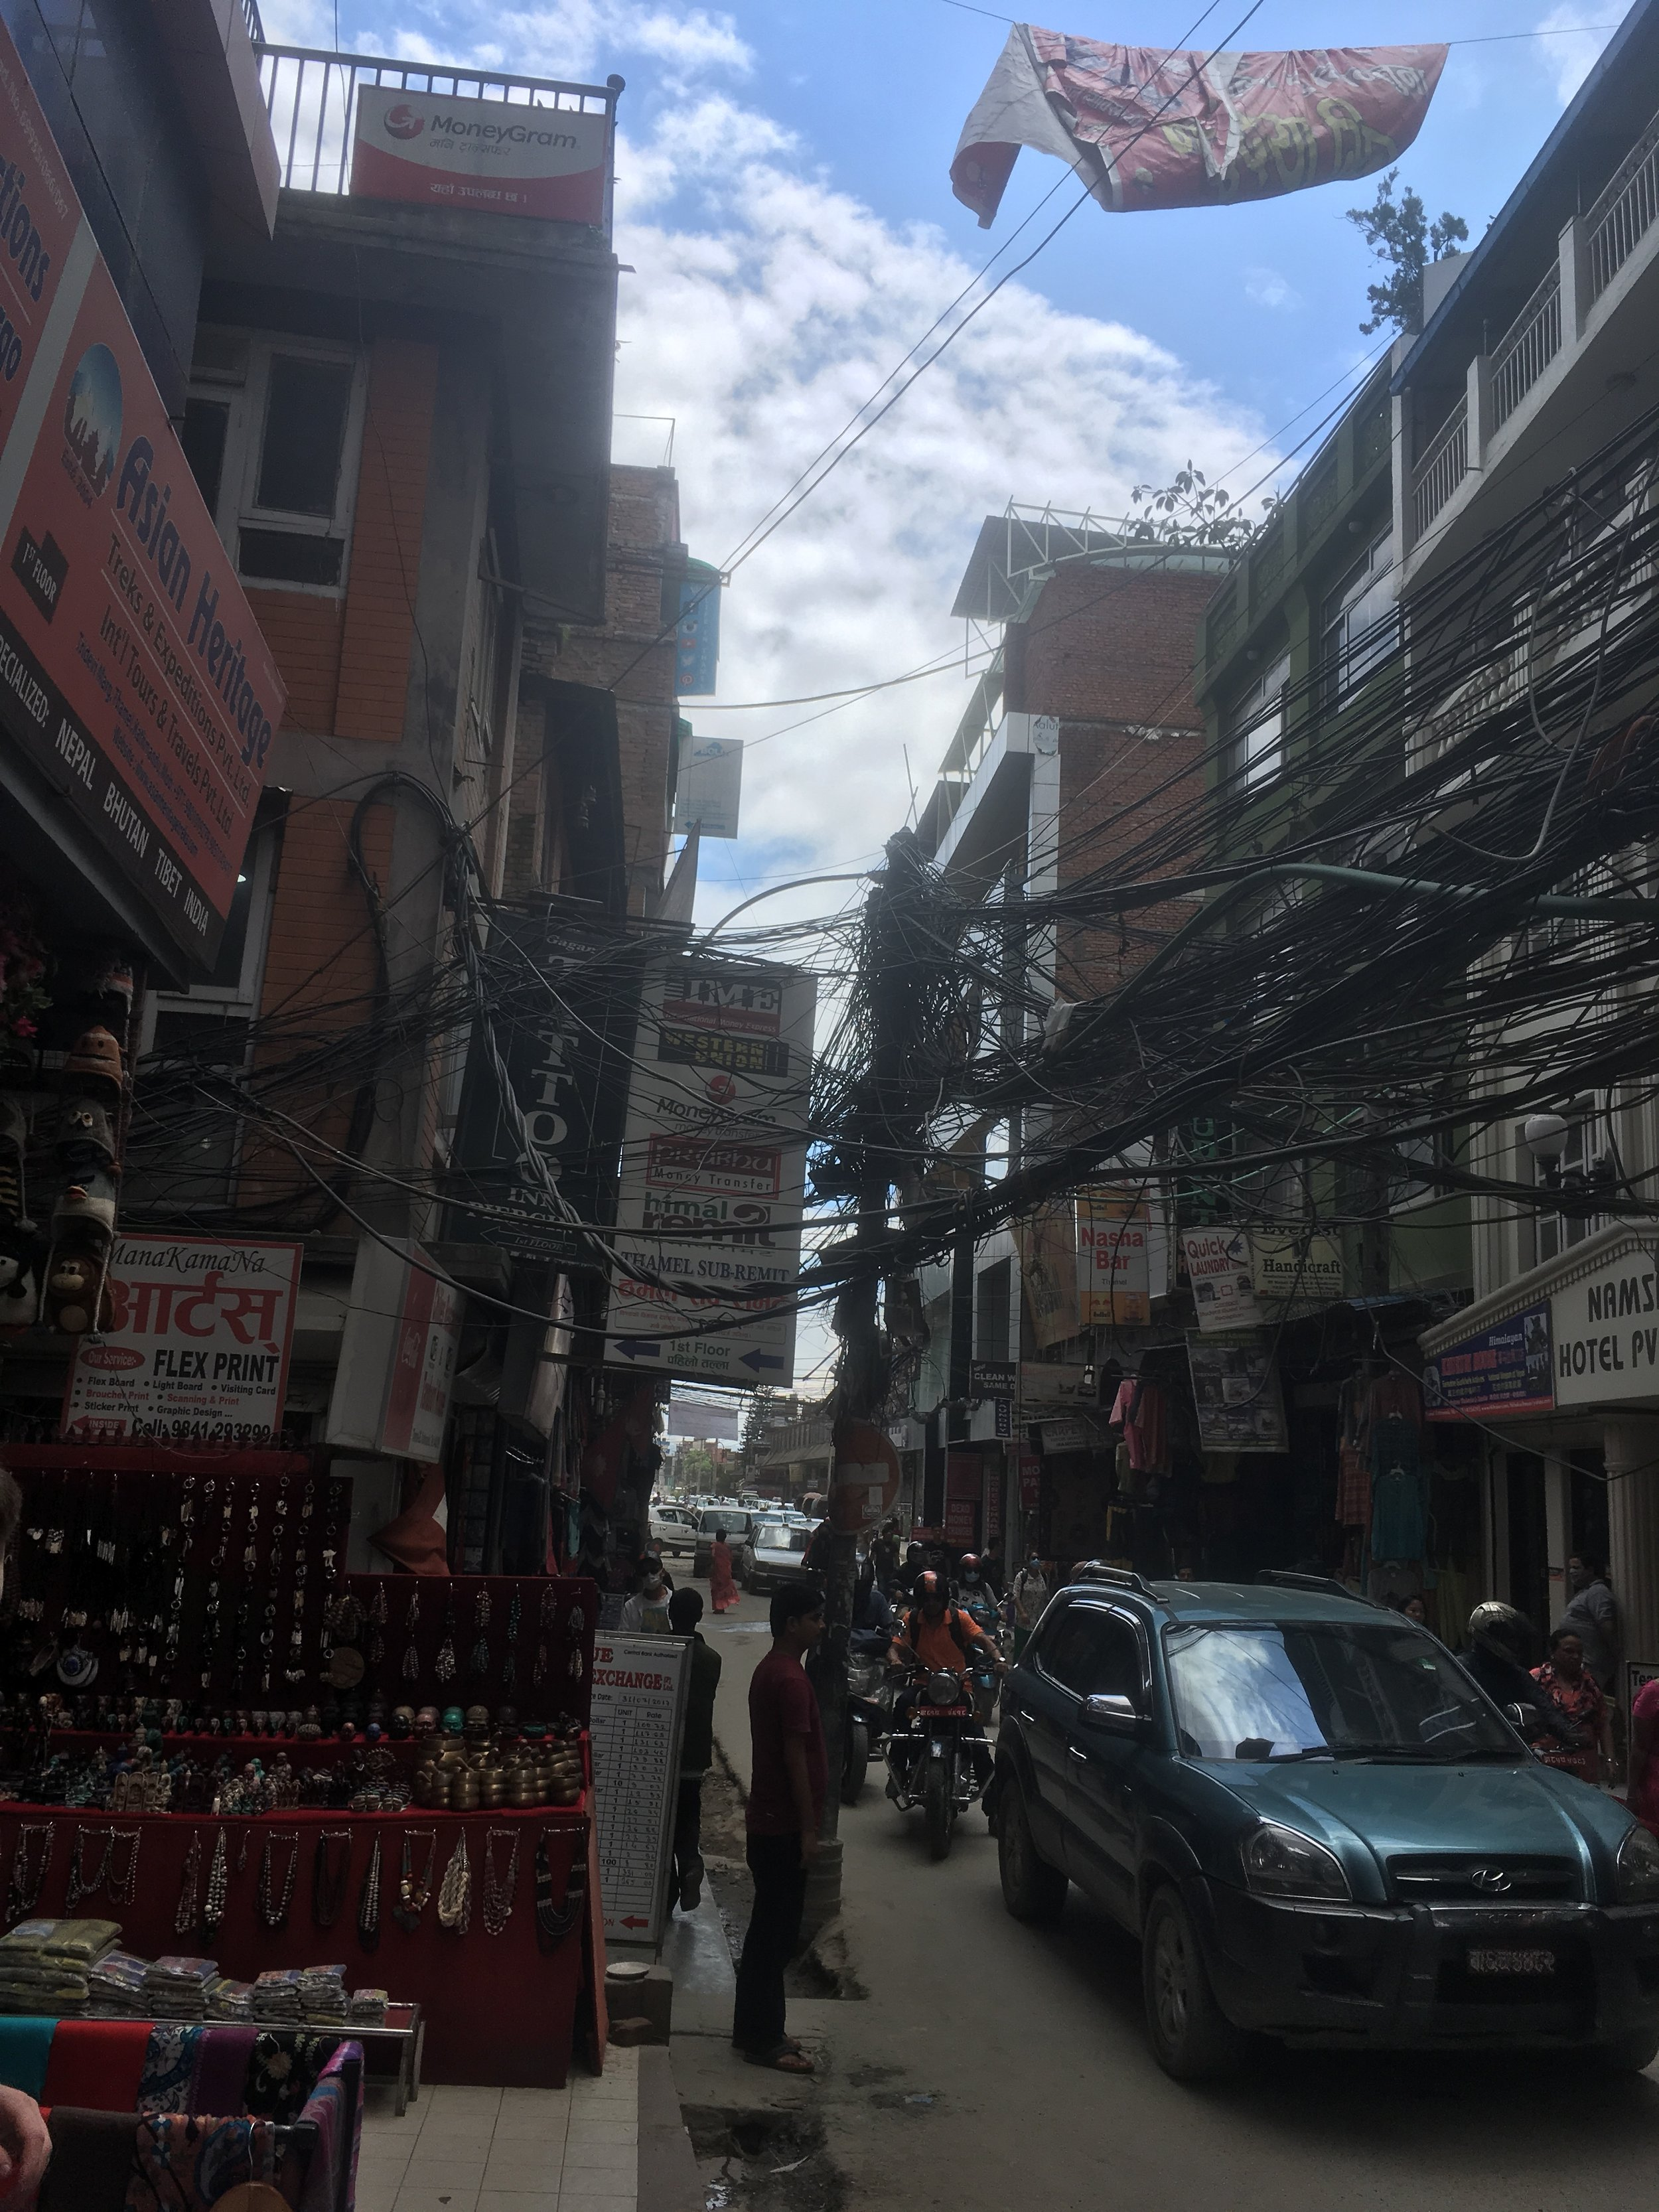 A spider's web of electrical wires